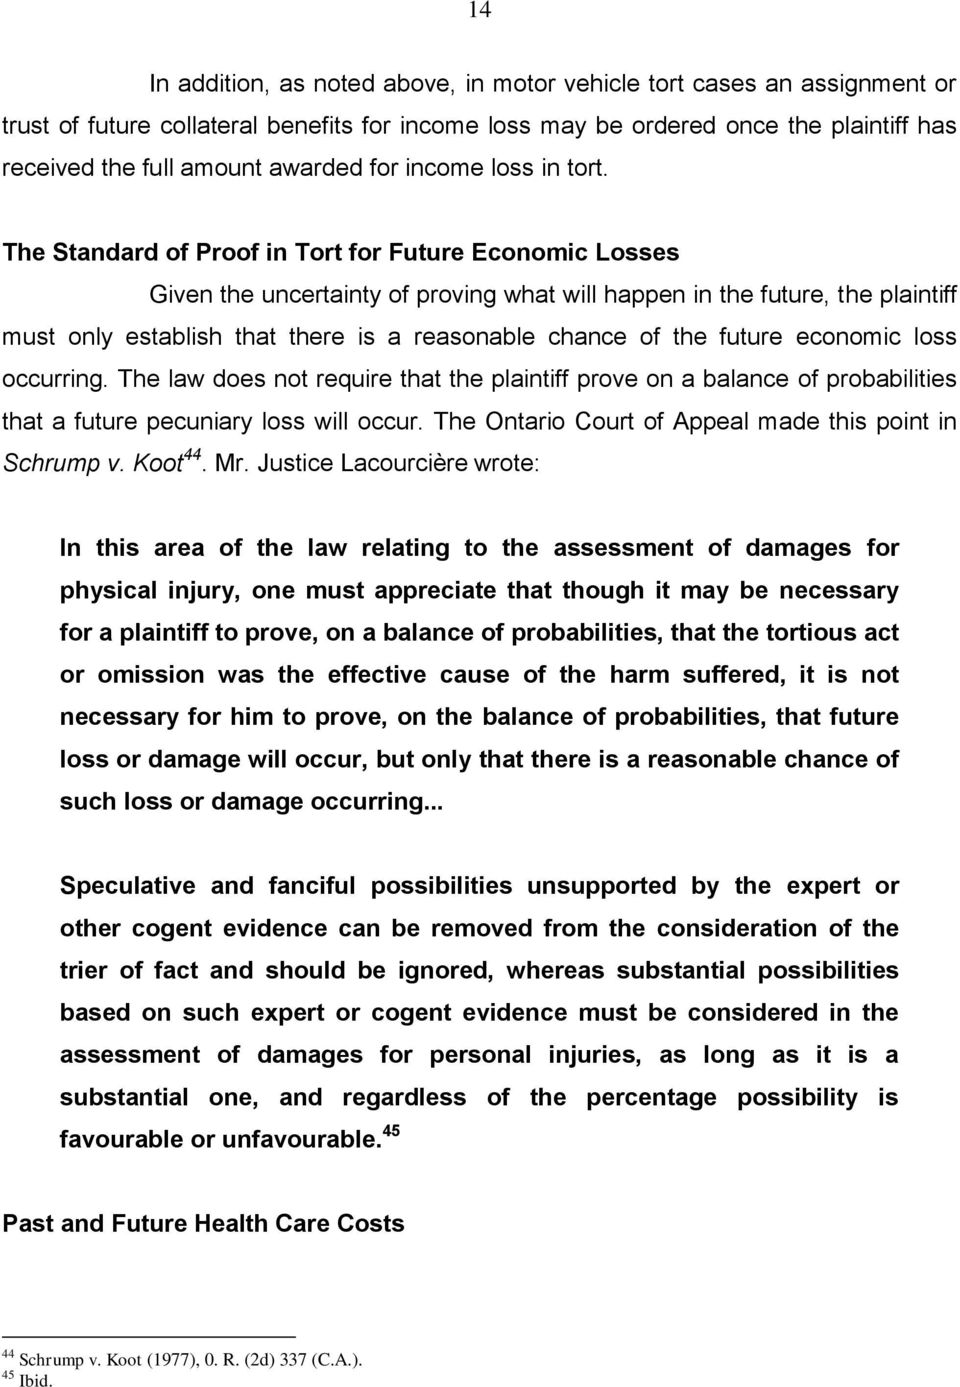 The Standard of Proof in Tort for Future Economic Losses Given the uncertainty of proving what will happen in the future, the plaintiff must only establish that there is a reasonable chance of the